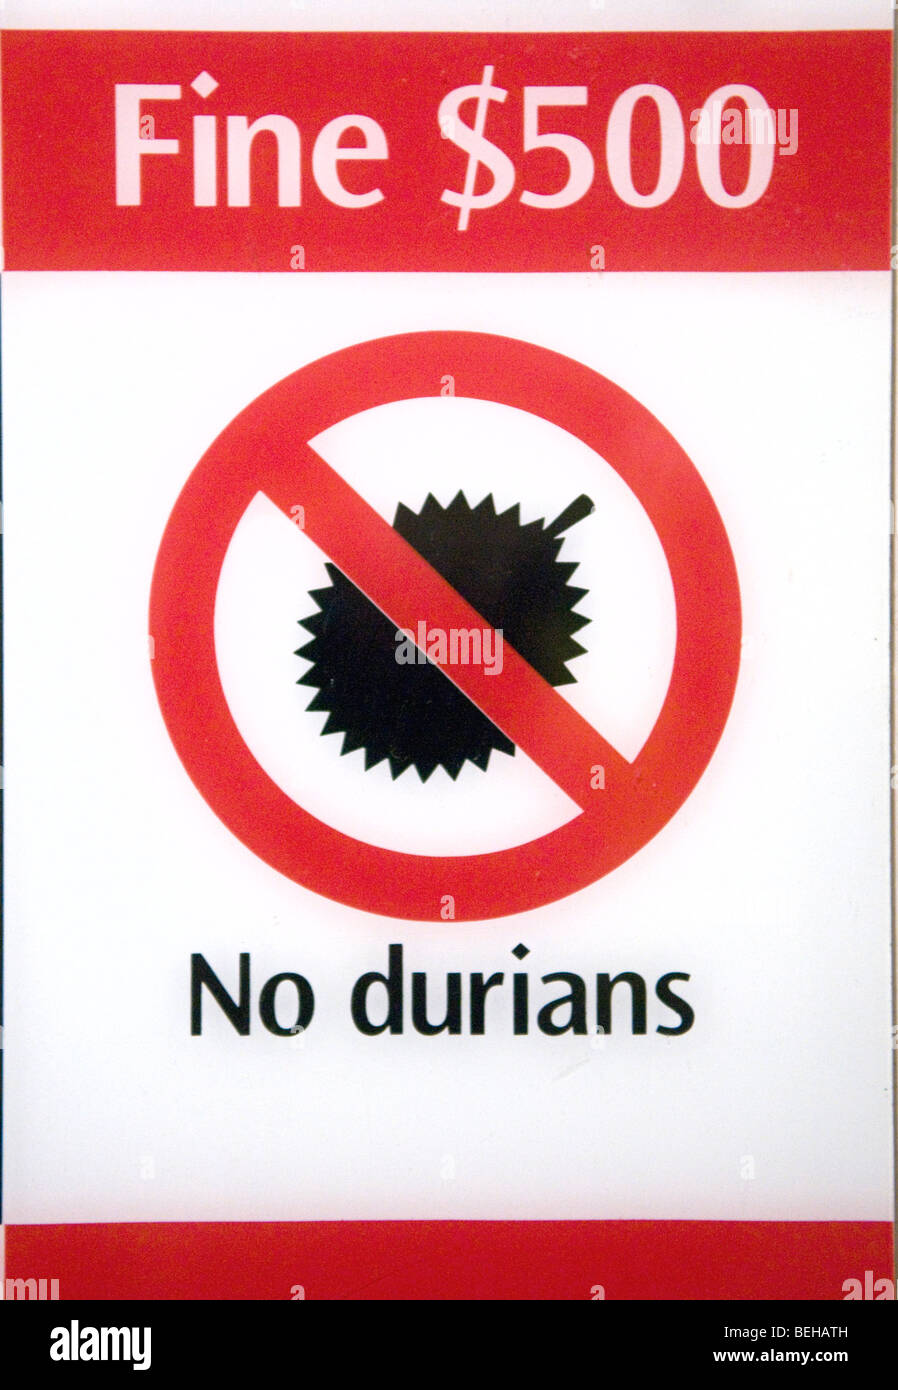 A sign prohibiting durian fruit in Singapore. - Stock Image